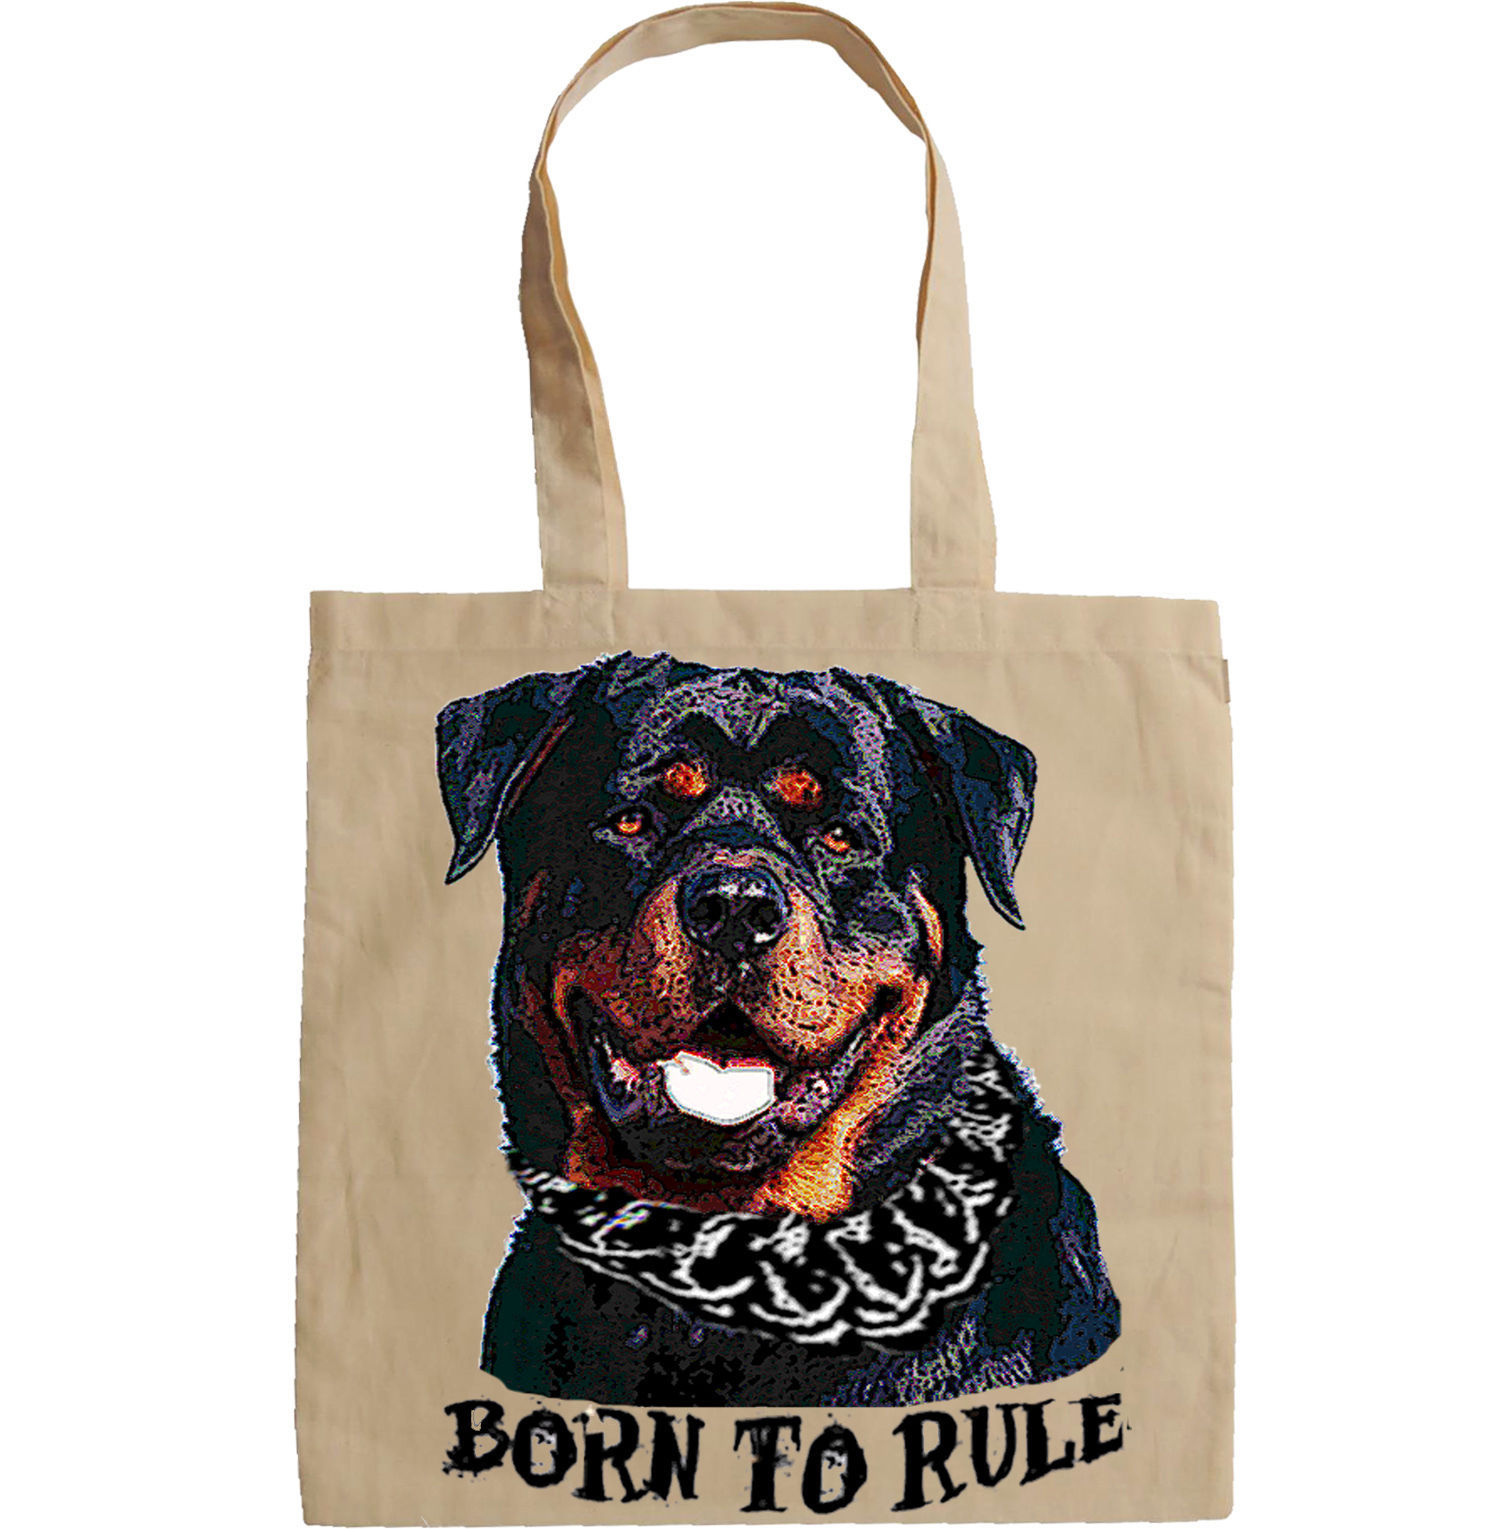 ROTTWEILER BORN TO RULE  -  NEW AMAZING GRAPHIC HAND BAG/TOTE BAG